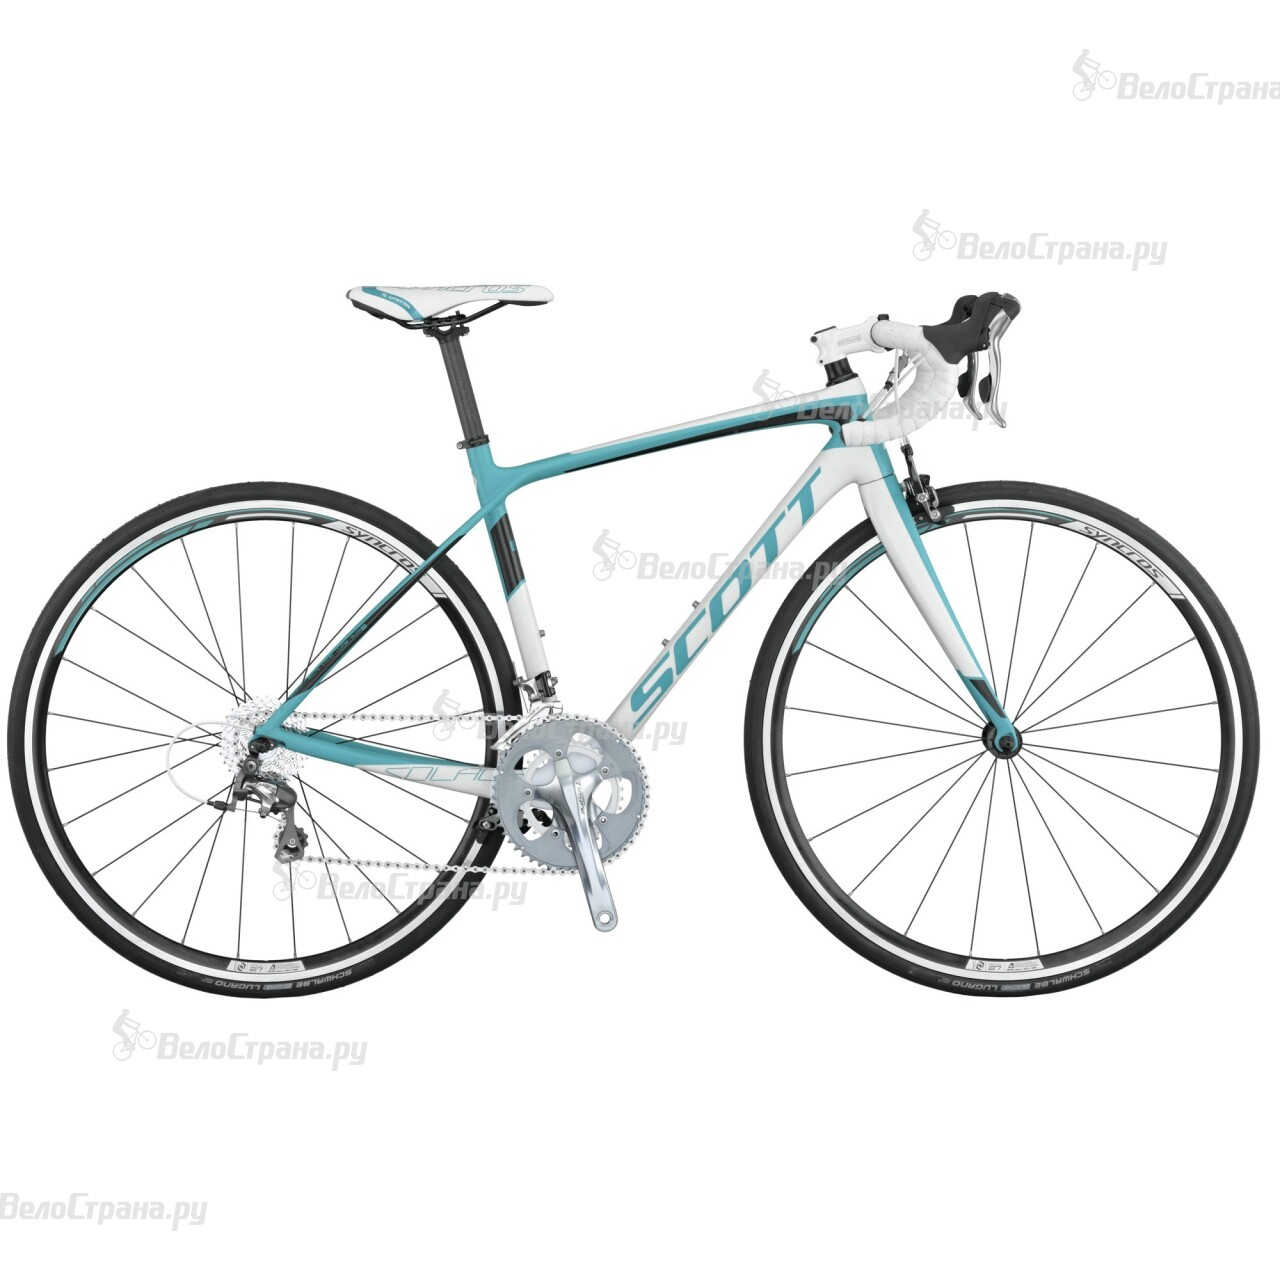 Велосипед Scott Contessa Solace 35 Compact (2015) велосипед scott solace 30 2015